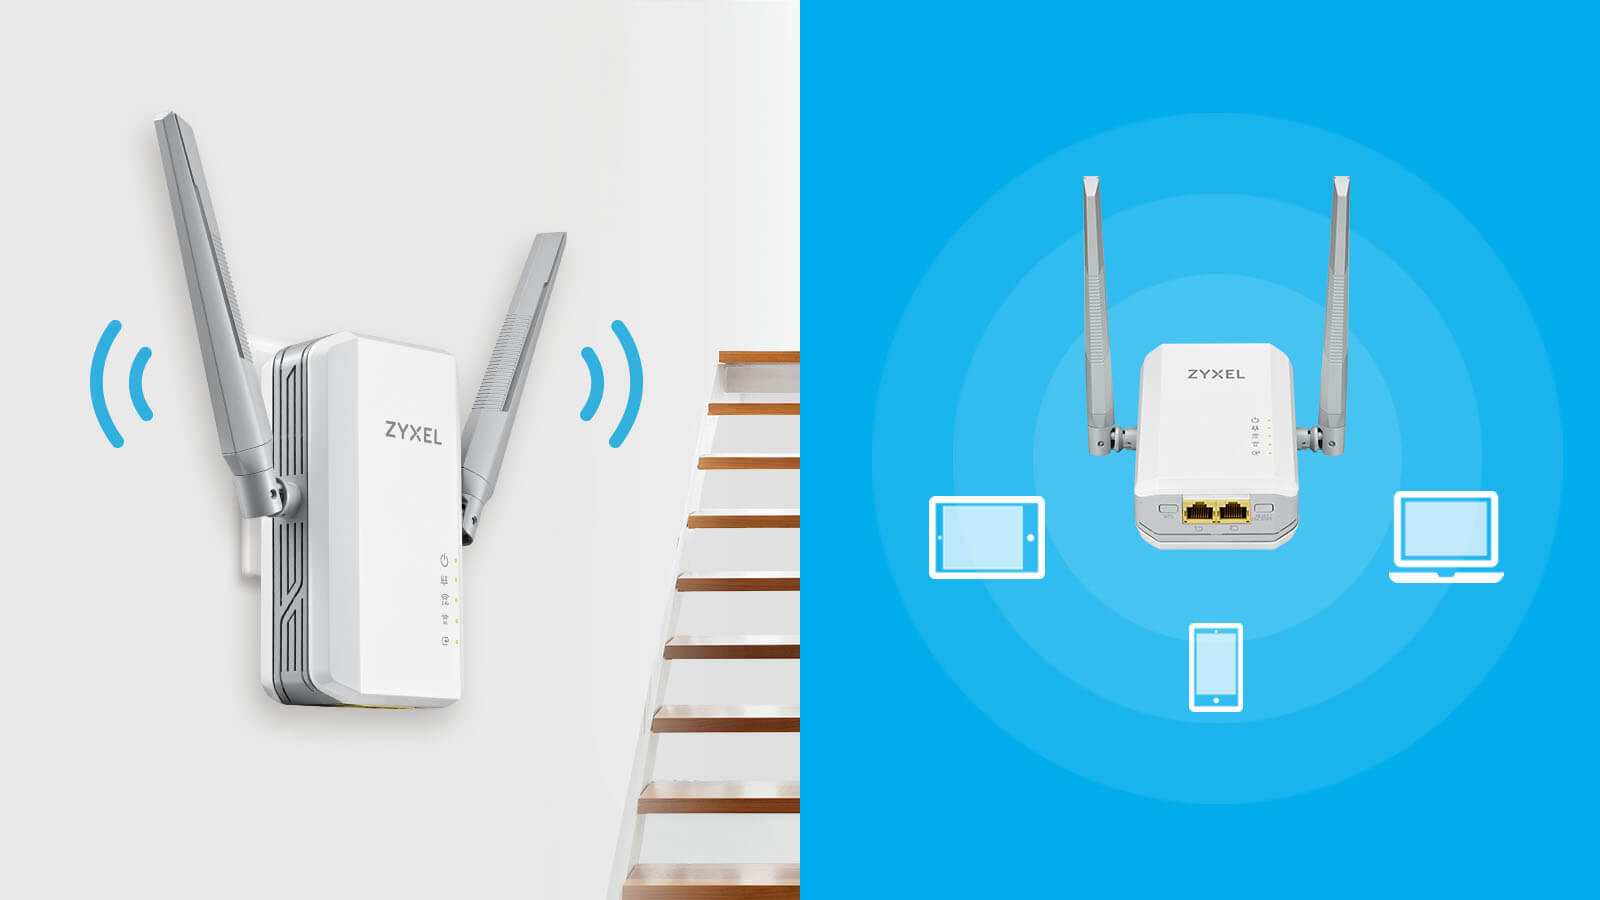 PLA5236, 1000 Mbps Powerline AC900 Wireless Extender